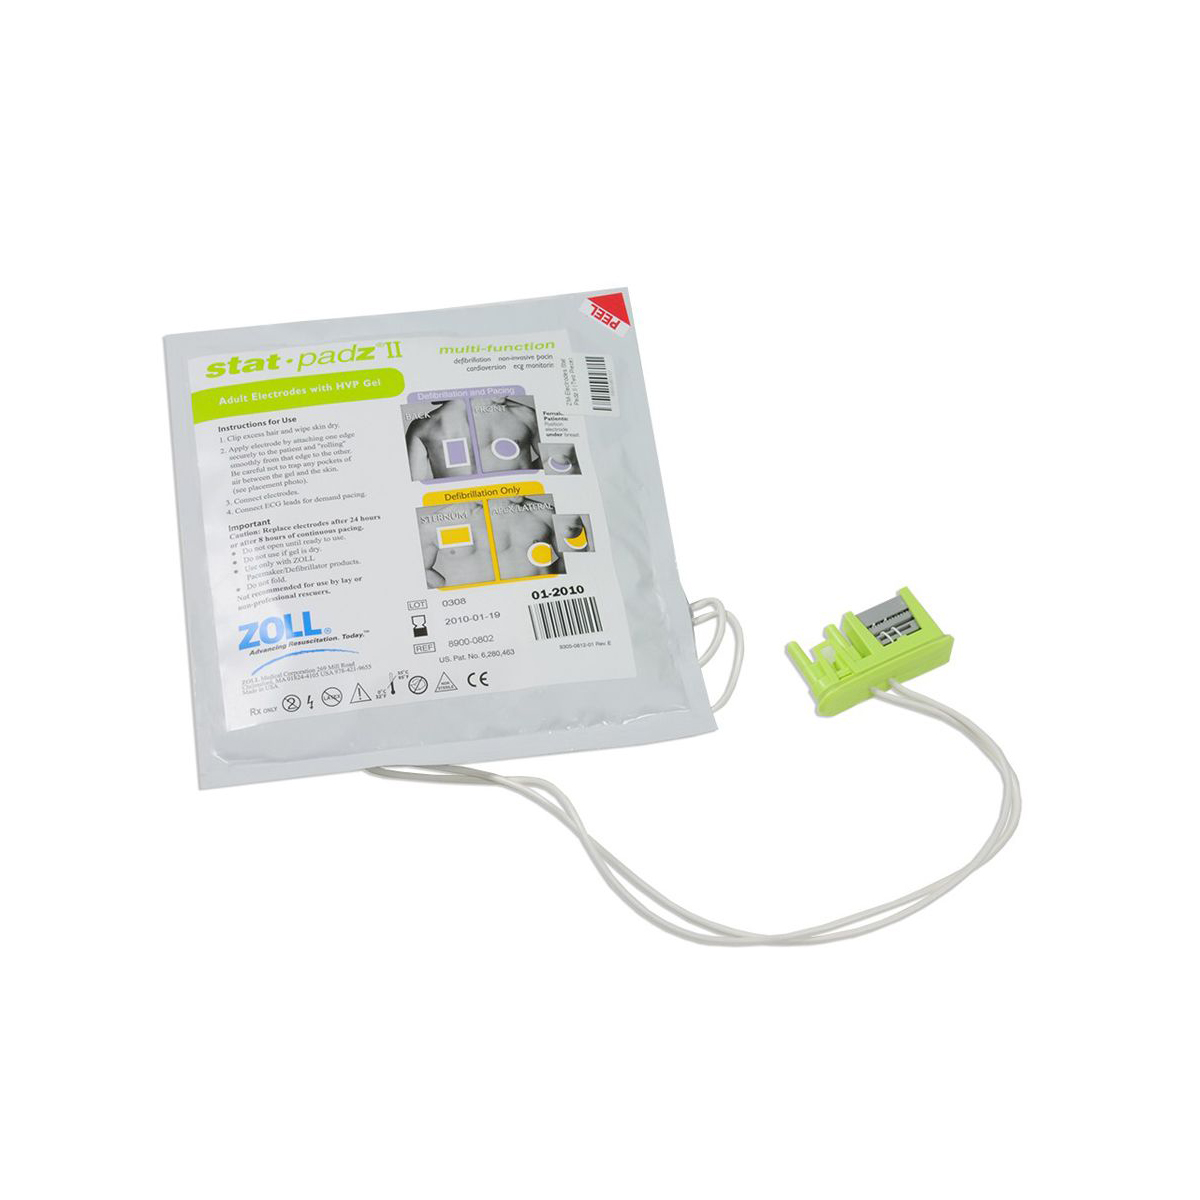 Zoll Stat-Padz® II for AED Plus and AED Pro